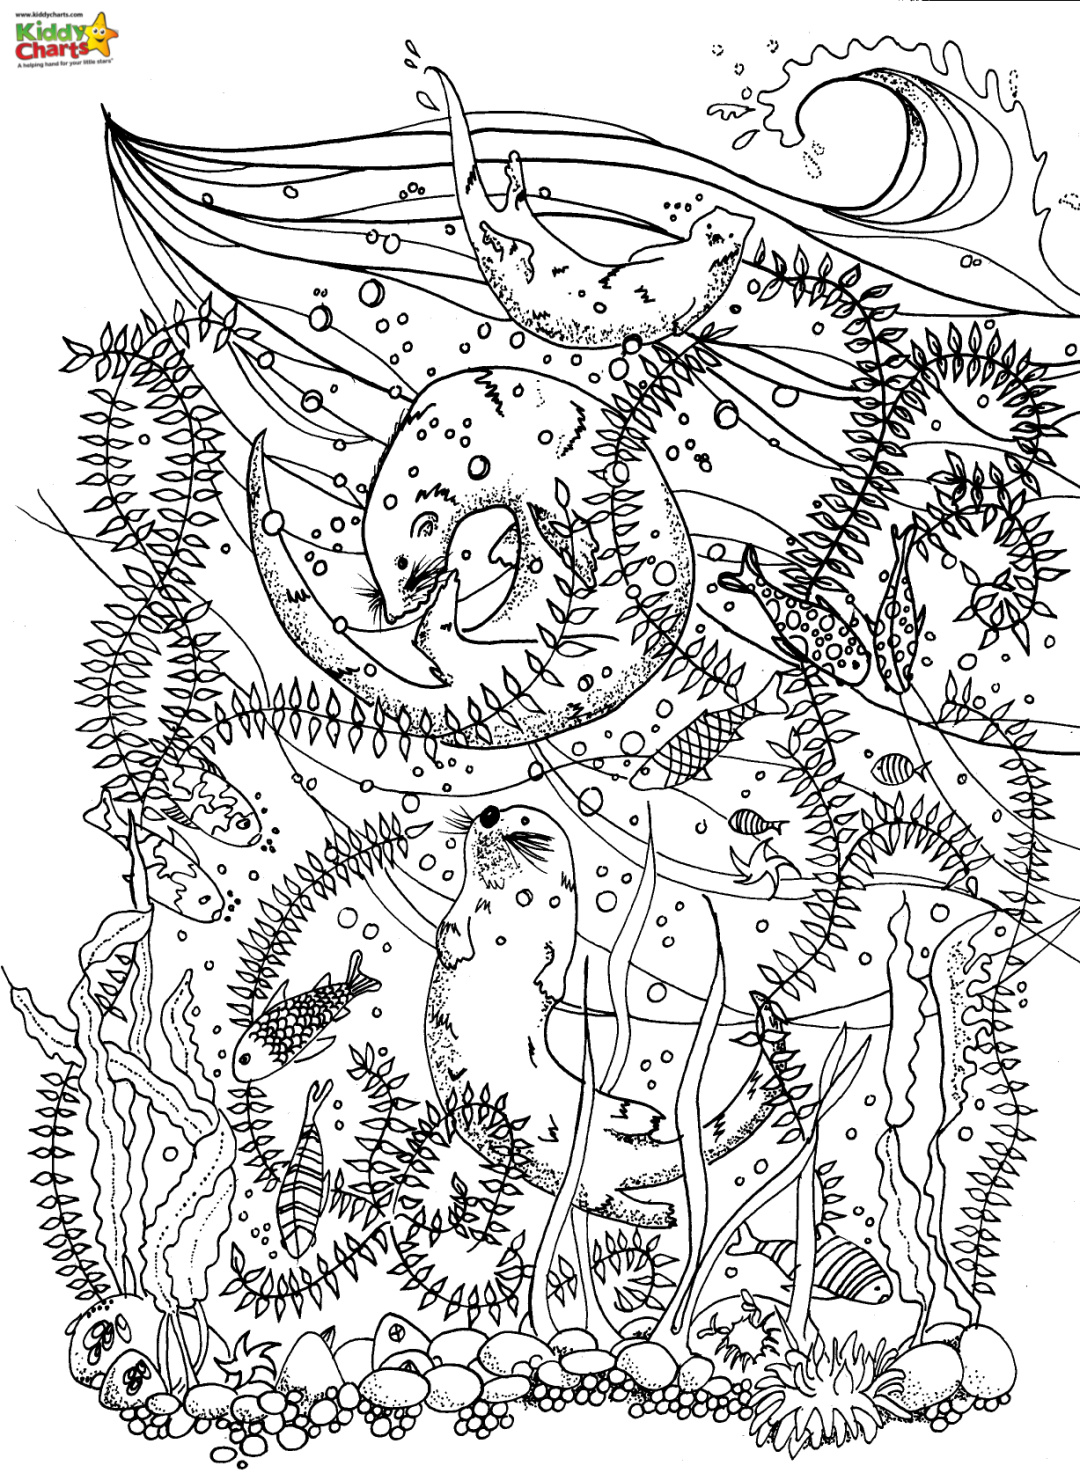 Sea dragon coloring page with a seal, fish and sea grass.